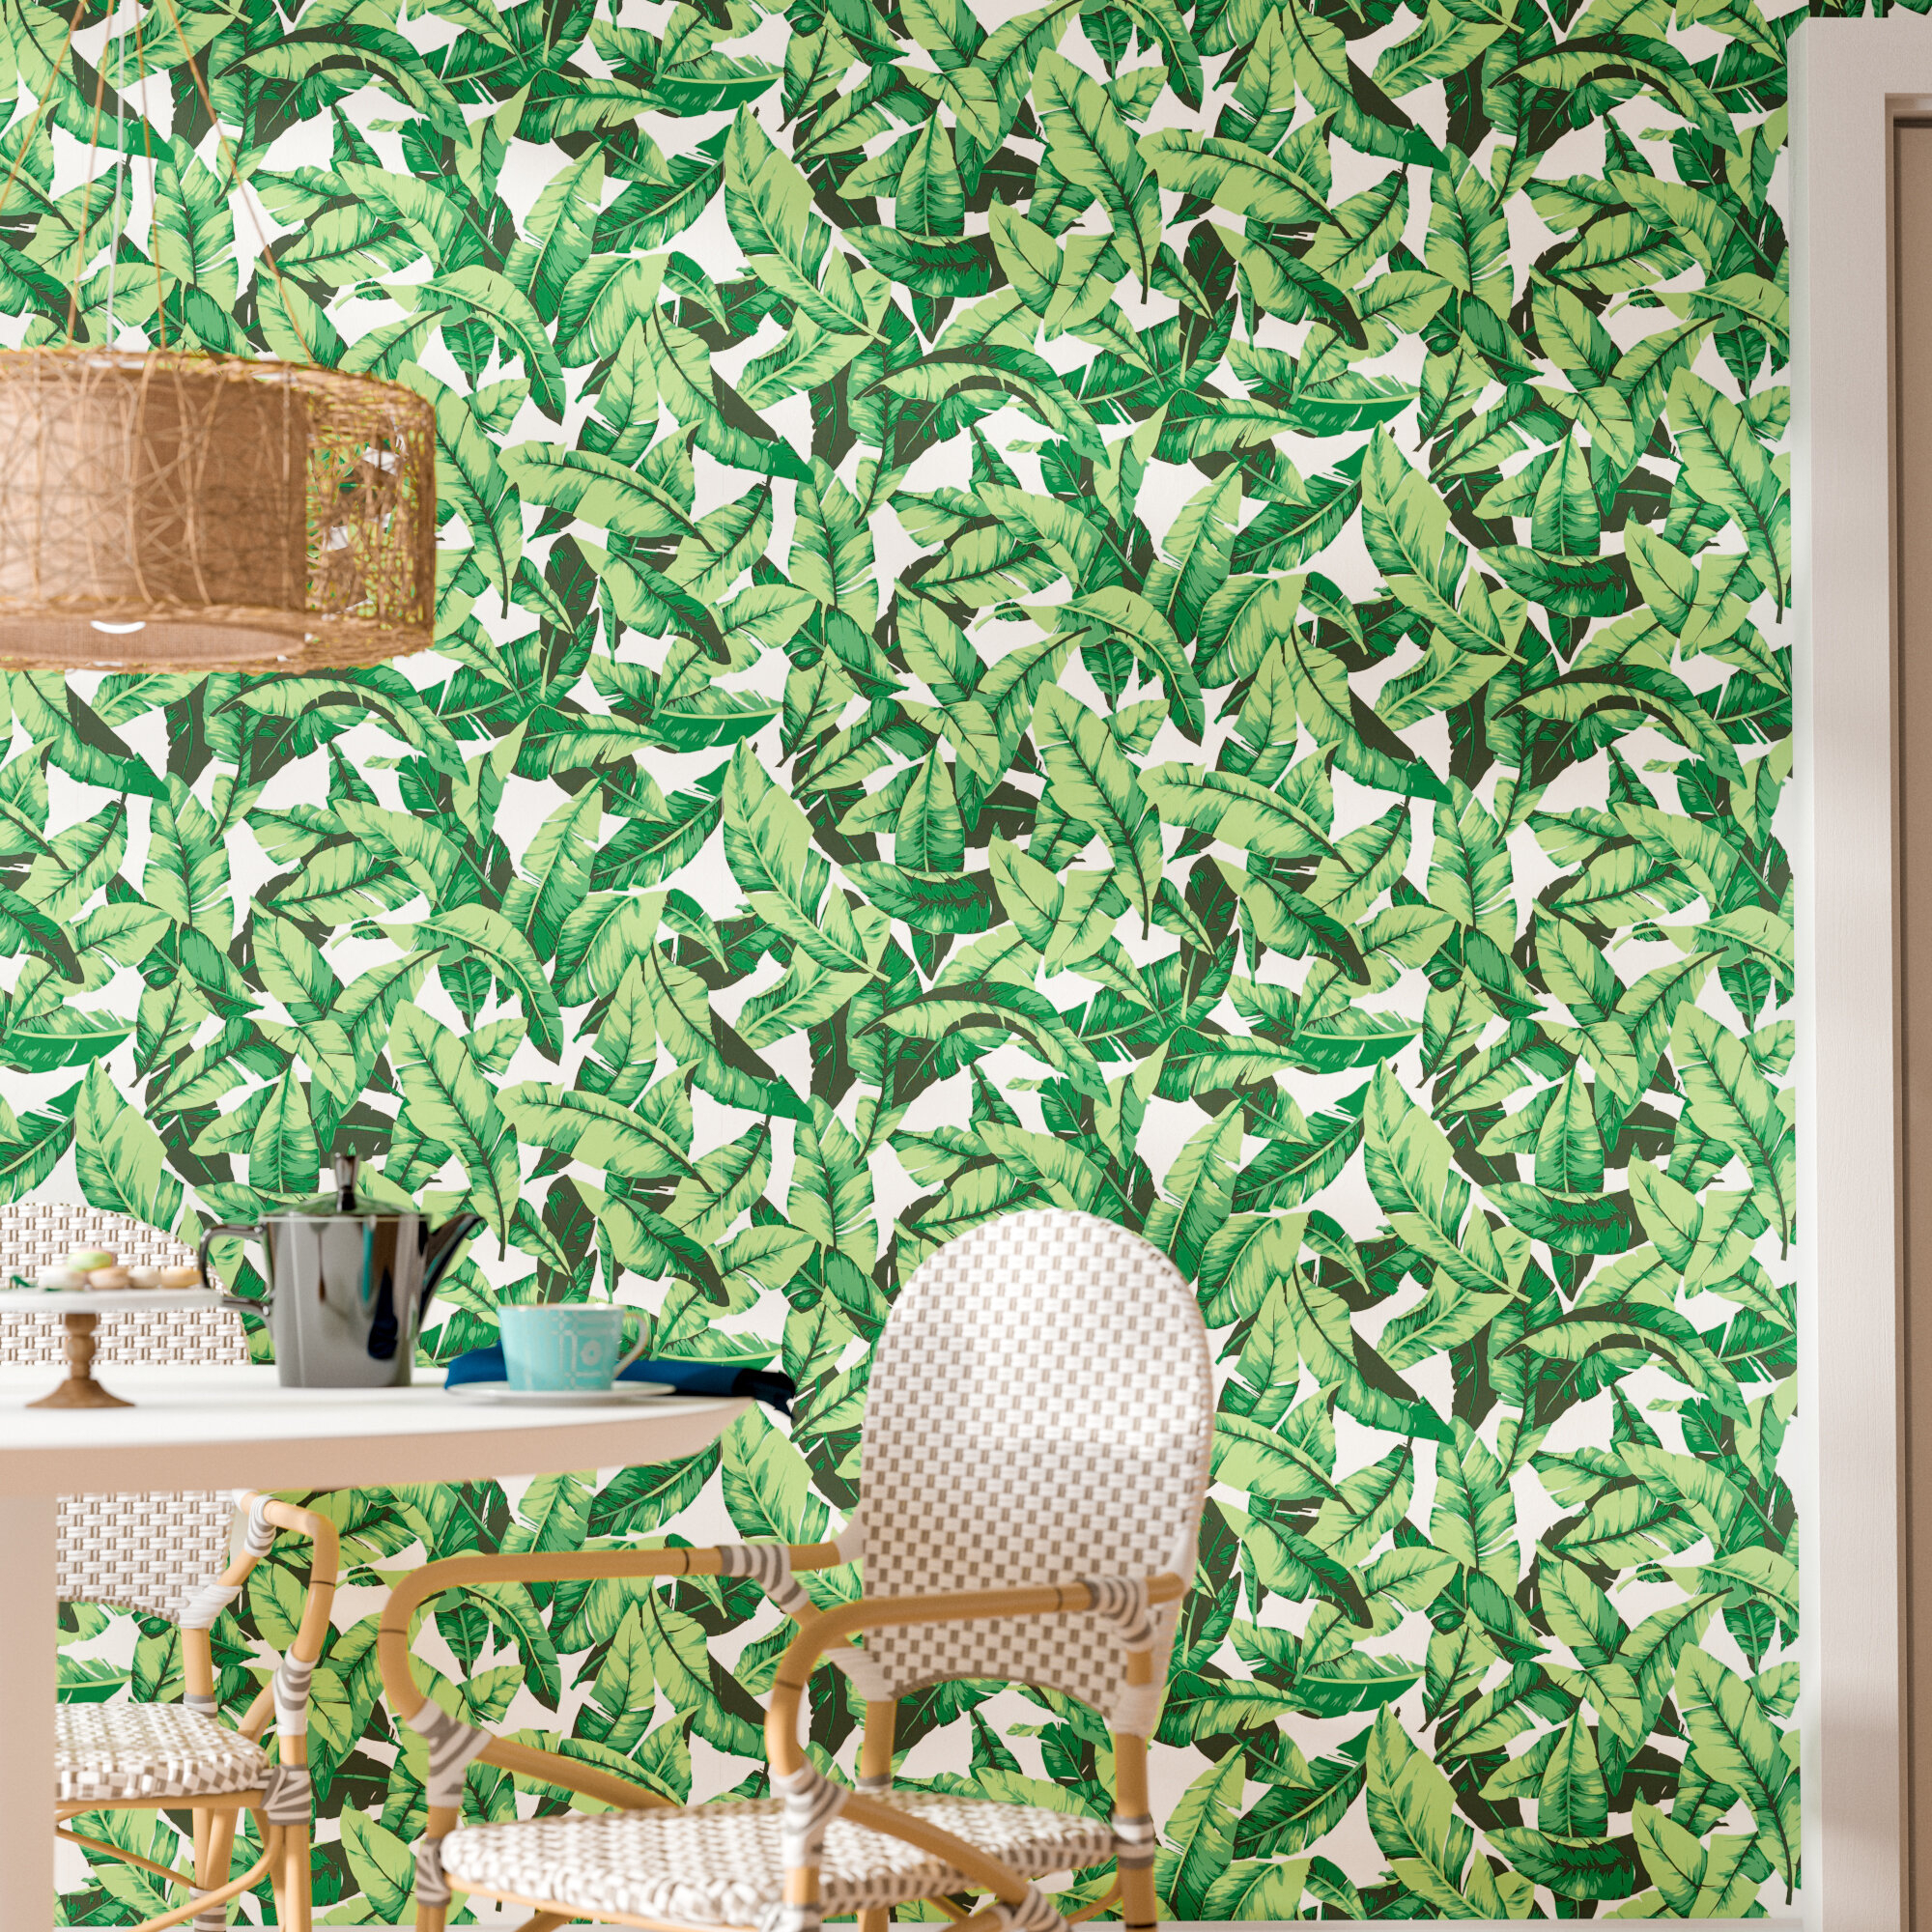 Global Inspired Wallpaper You'll Love In 2021 | Wayfair Within Recent Blended Fabric Faraway Longing Wall Hangings (View 18 of 20)